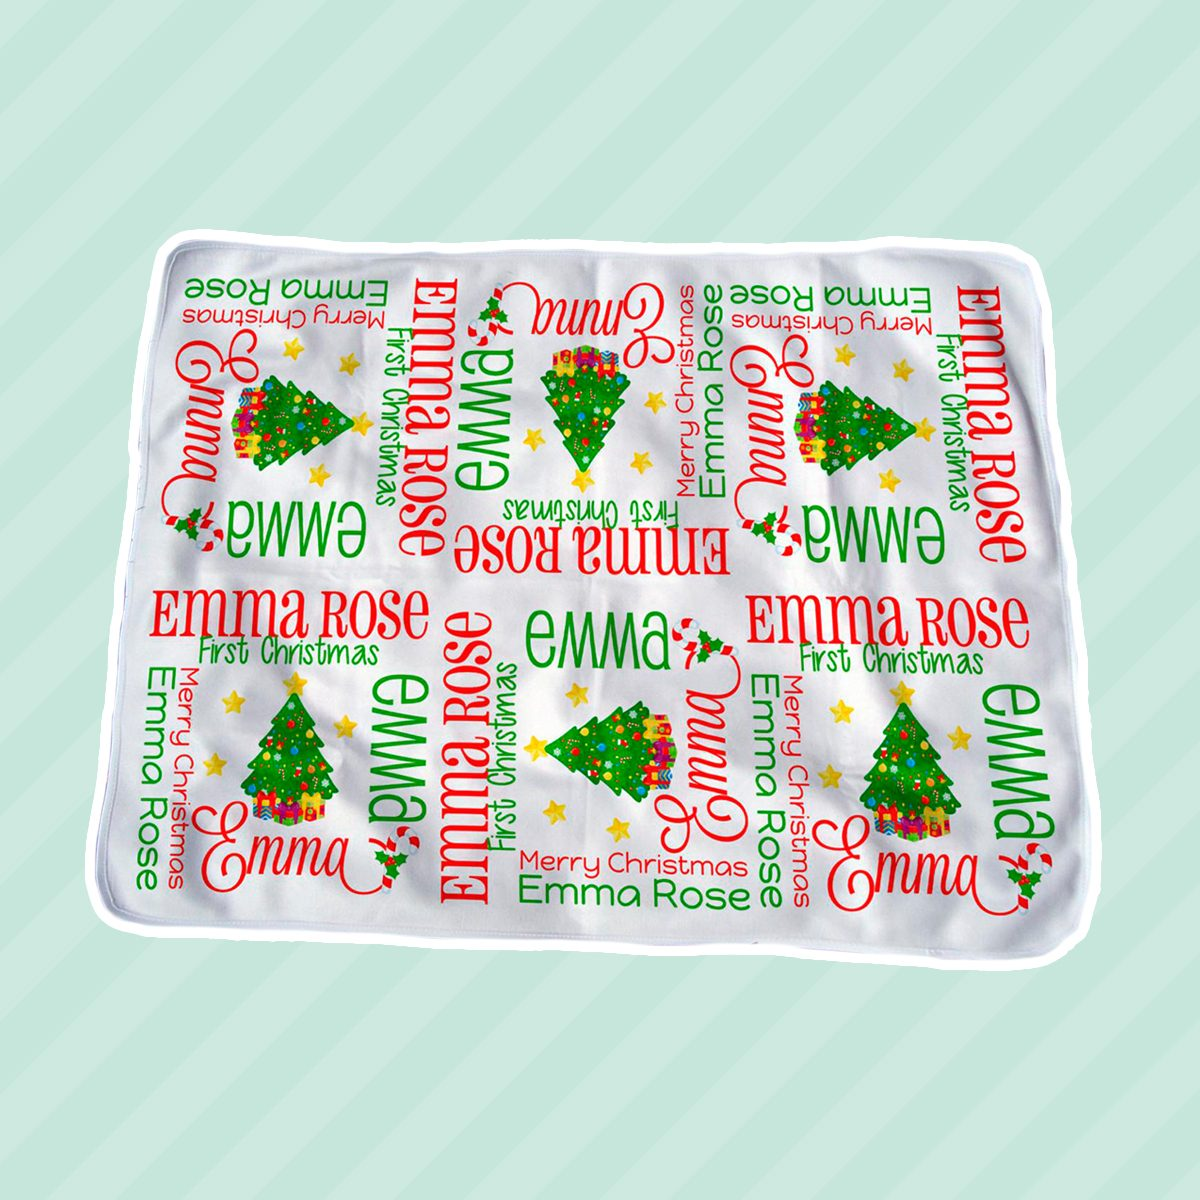 1st Christmas Baby Blanket Personalized - Christmas Tree Receiving Blanket - Holiday Baby Name Blanket - First Christmas Swaddling Blanket